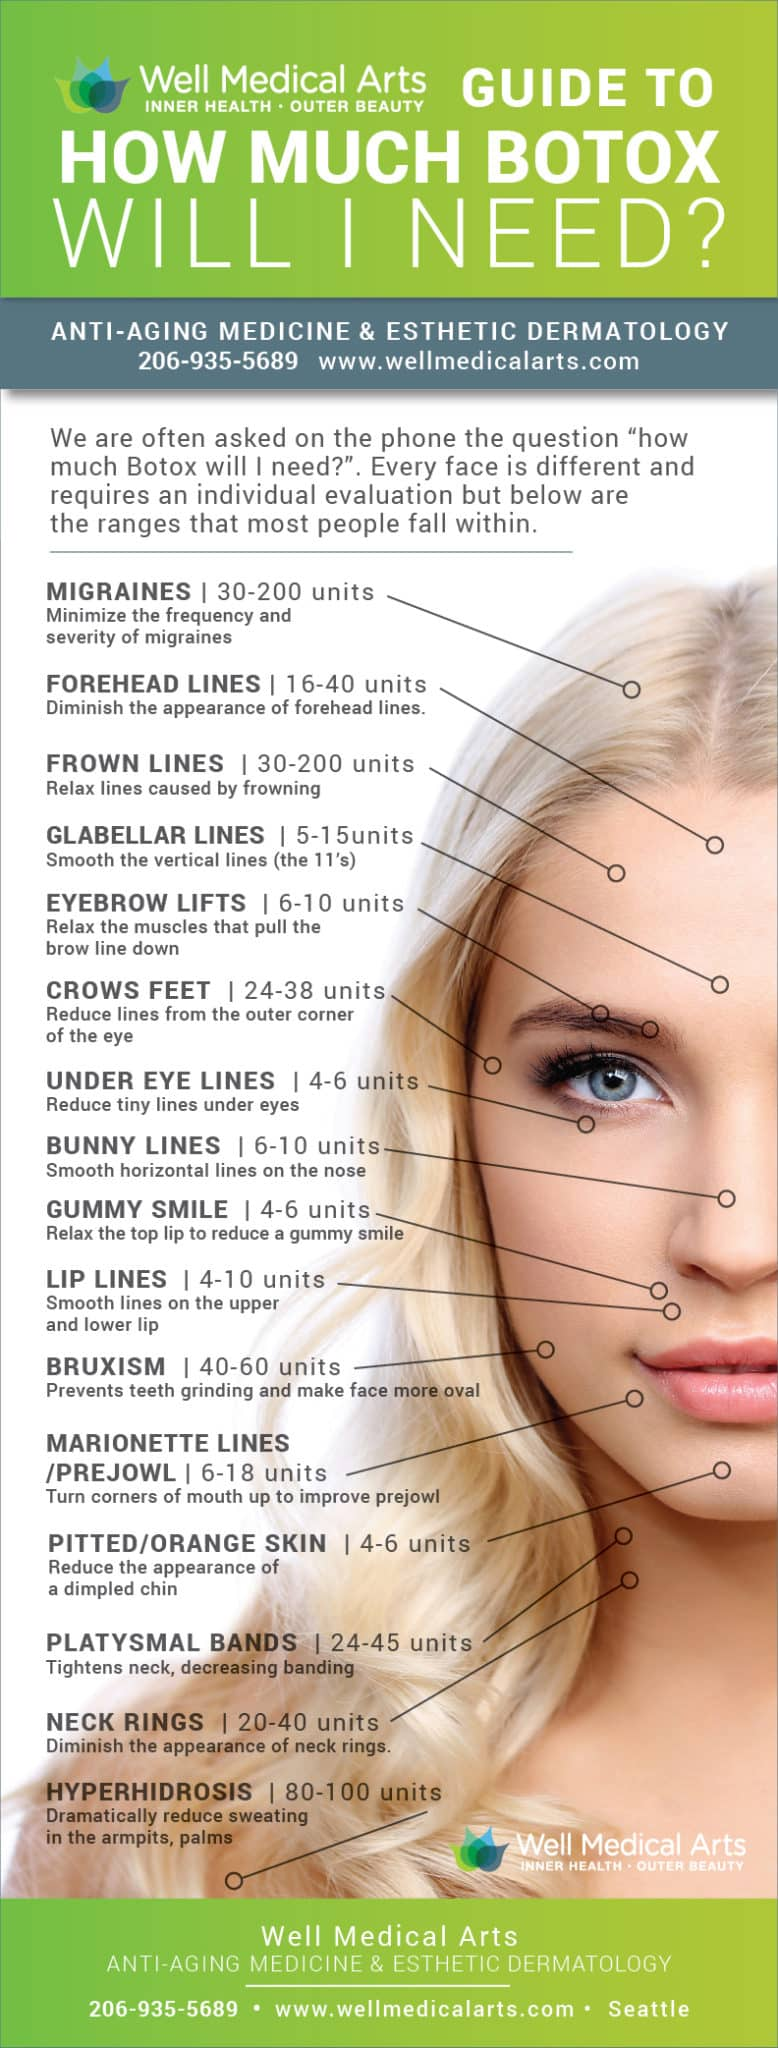 Where we commonly use BOTOX and how many units of BOTOX we typically use in each area treated. Call Well Medical Arts in Seattle at 206-935-5689 to schedule your consultation to learn more.